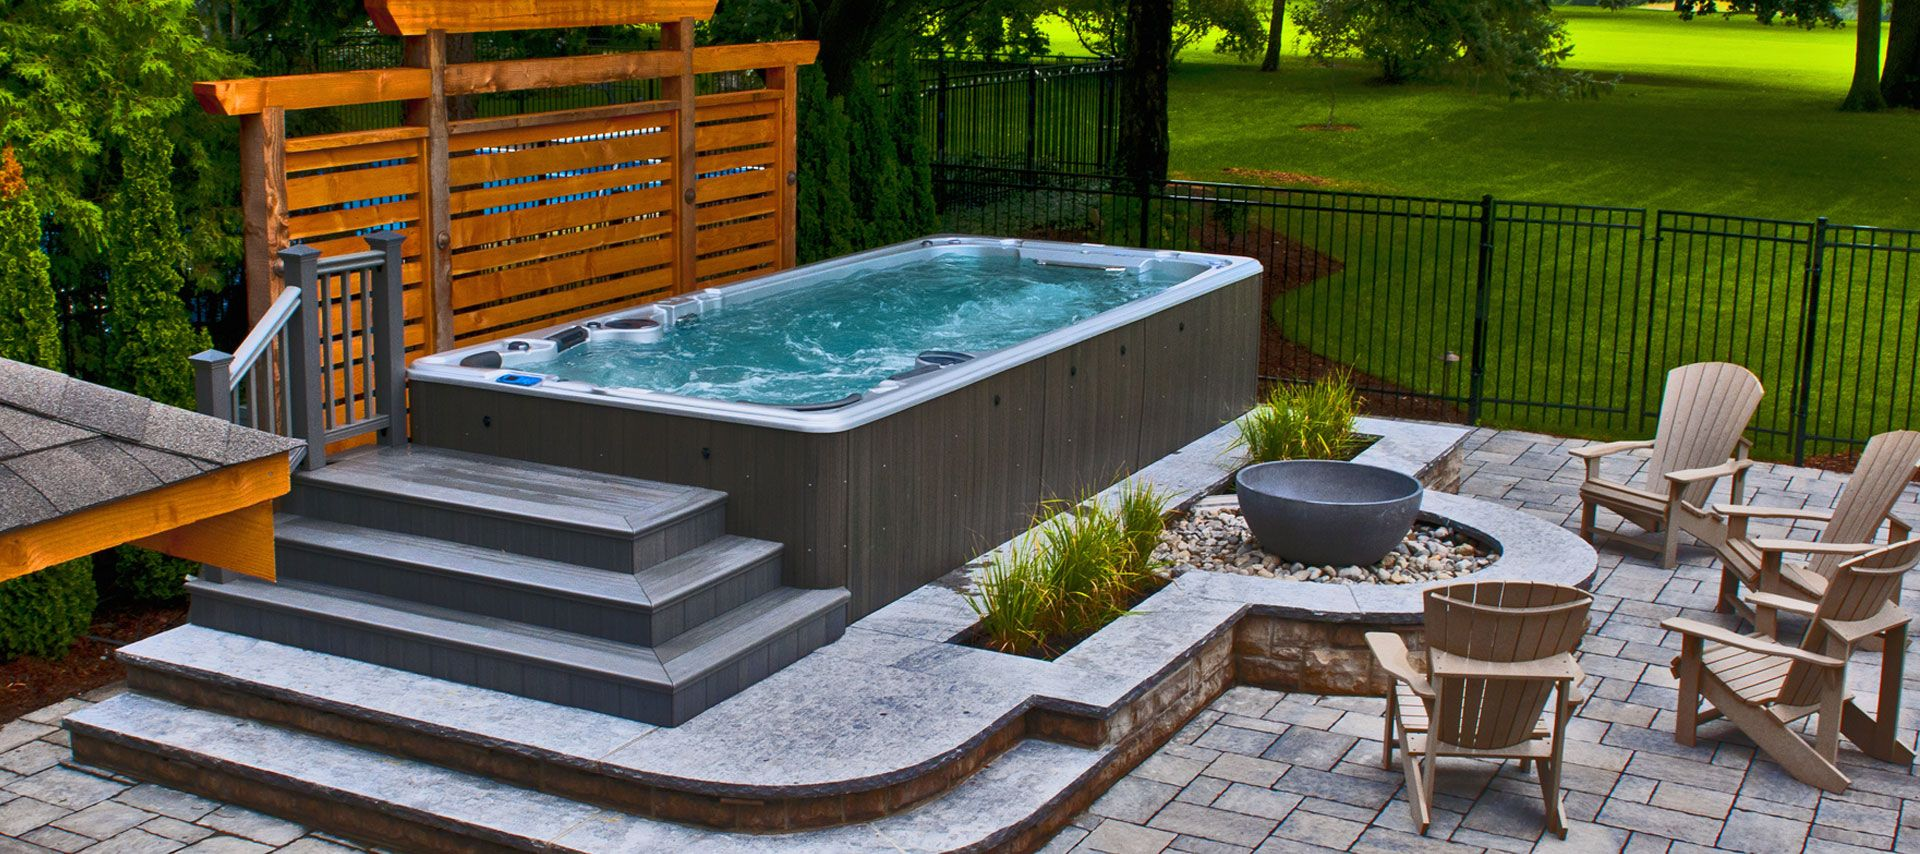 Hydropool Hot Tubs Swim Spas And Accessories Hot Tub